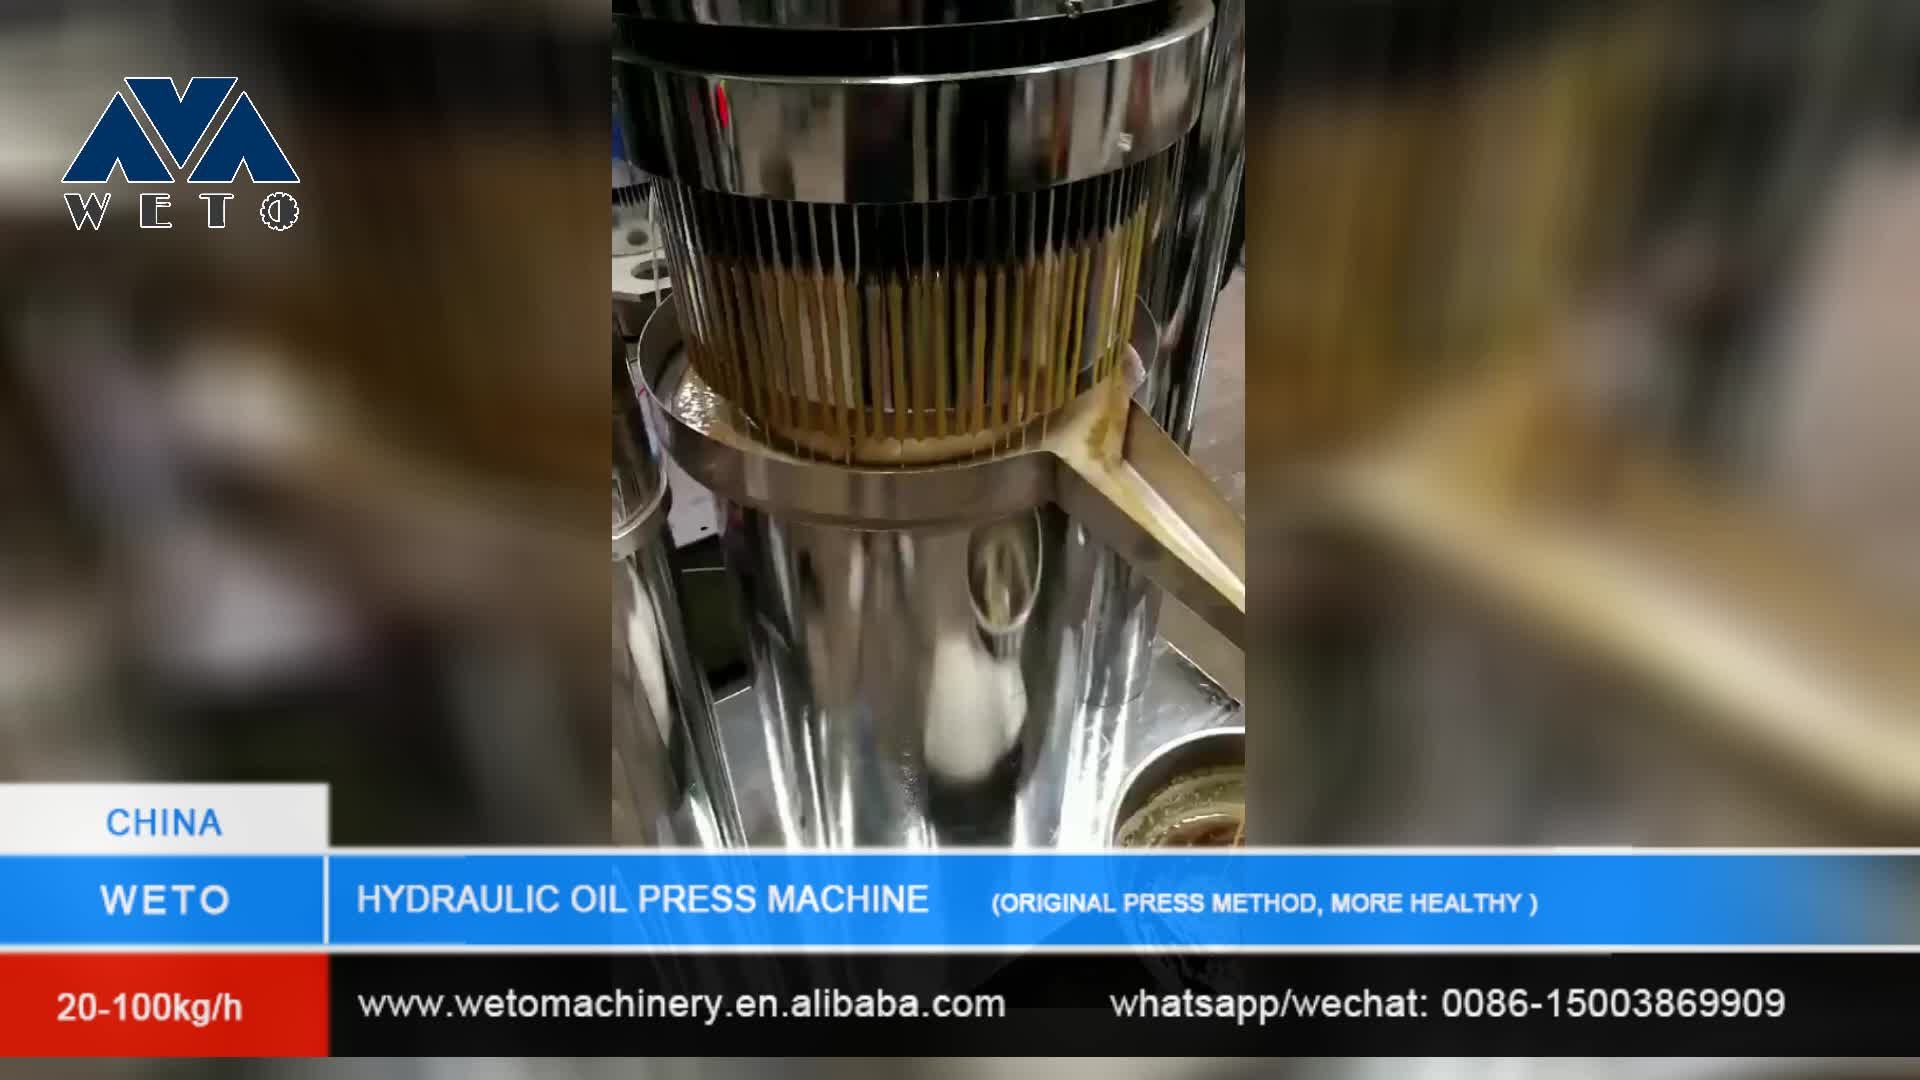 Stainless steel material 6YY-230 hydraulic oil extraction machineoilseed presshydraulic press for vegetable seed